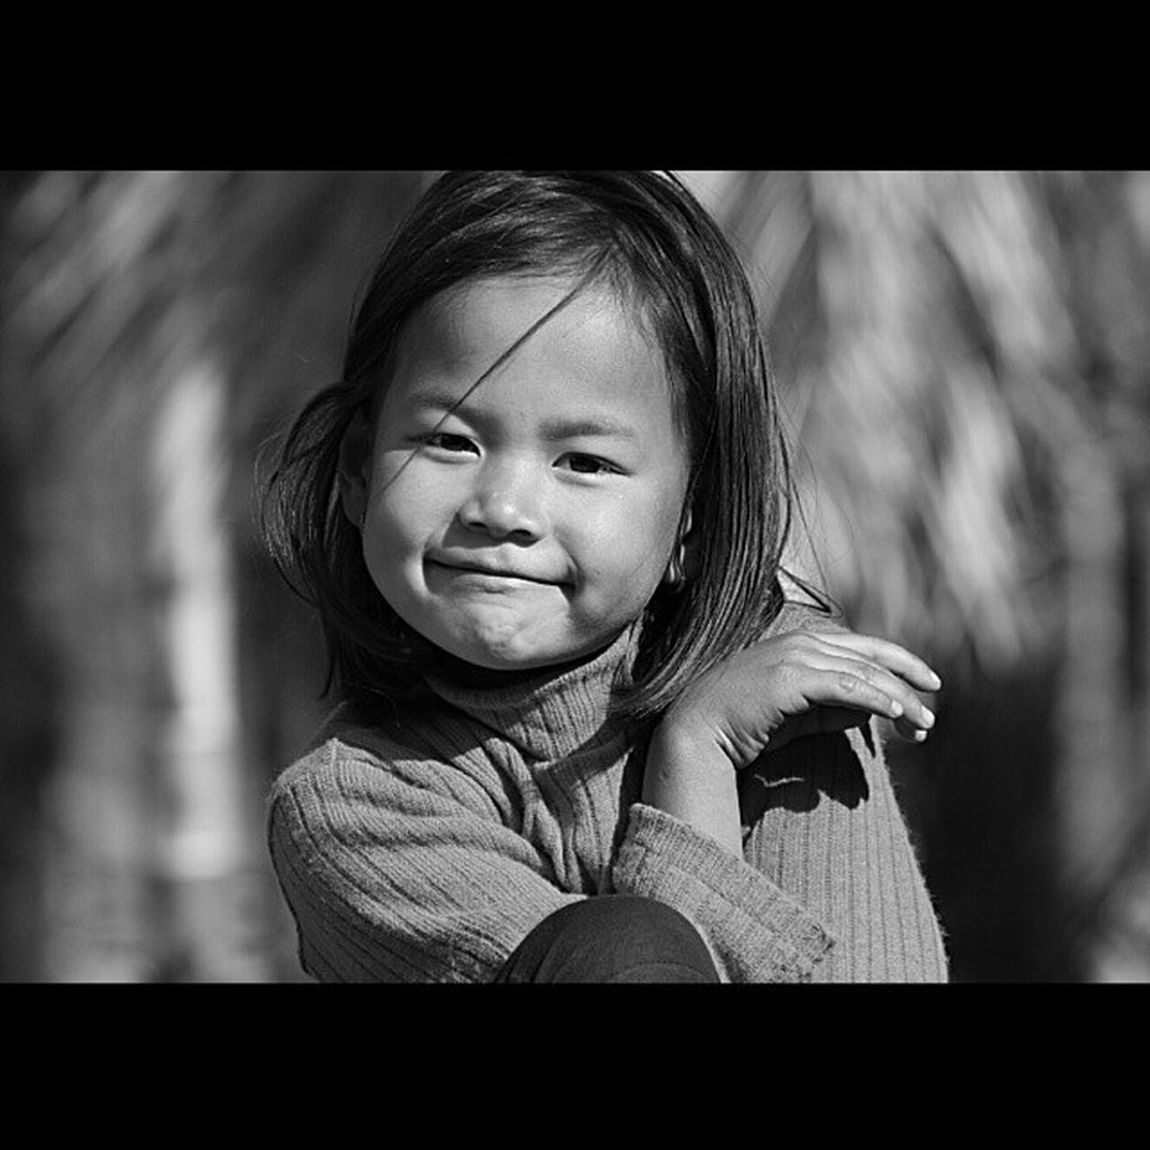 Smile! Chi ching! Ig_bhutan Ig_asia Igworldcup 1001people universal_bnw_portrait bnw_piemonte01